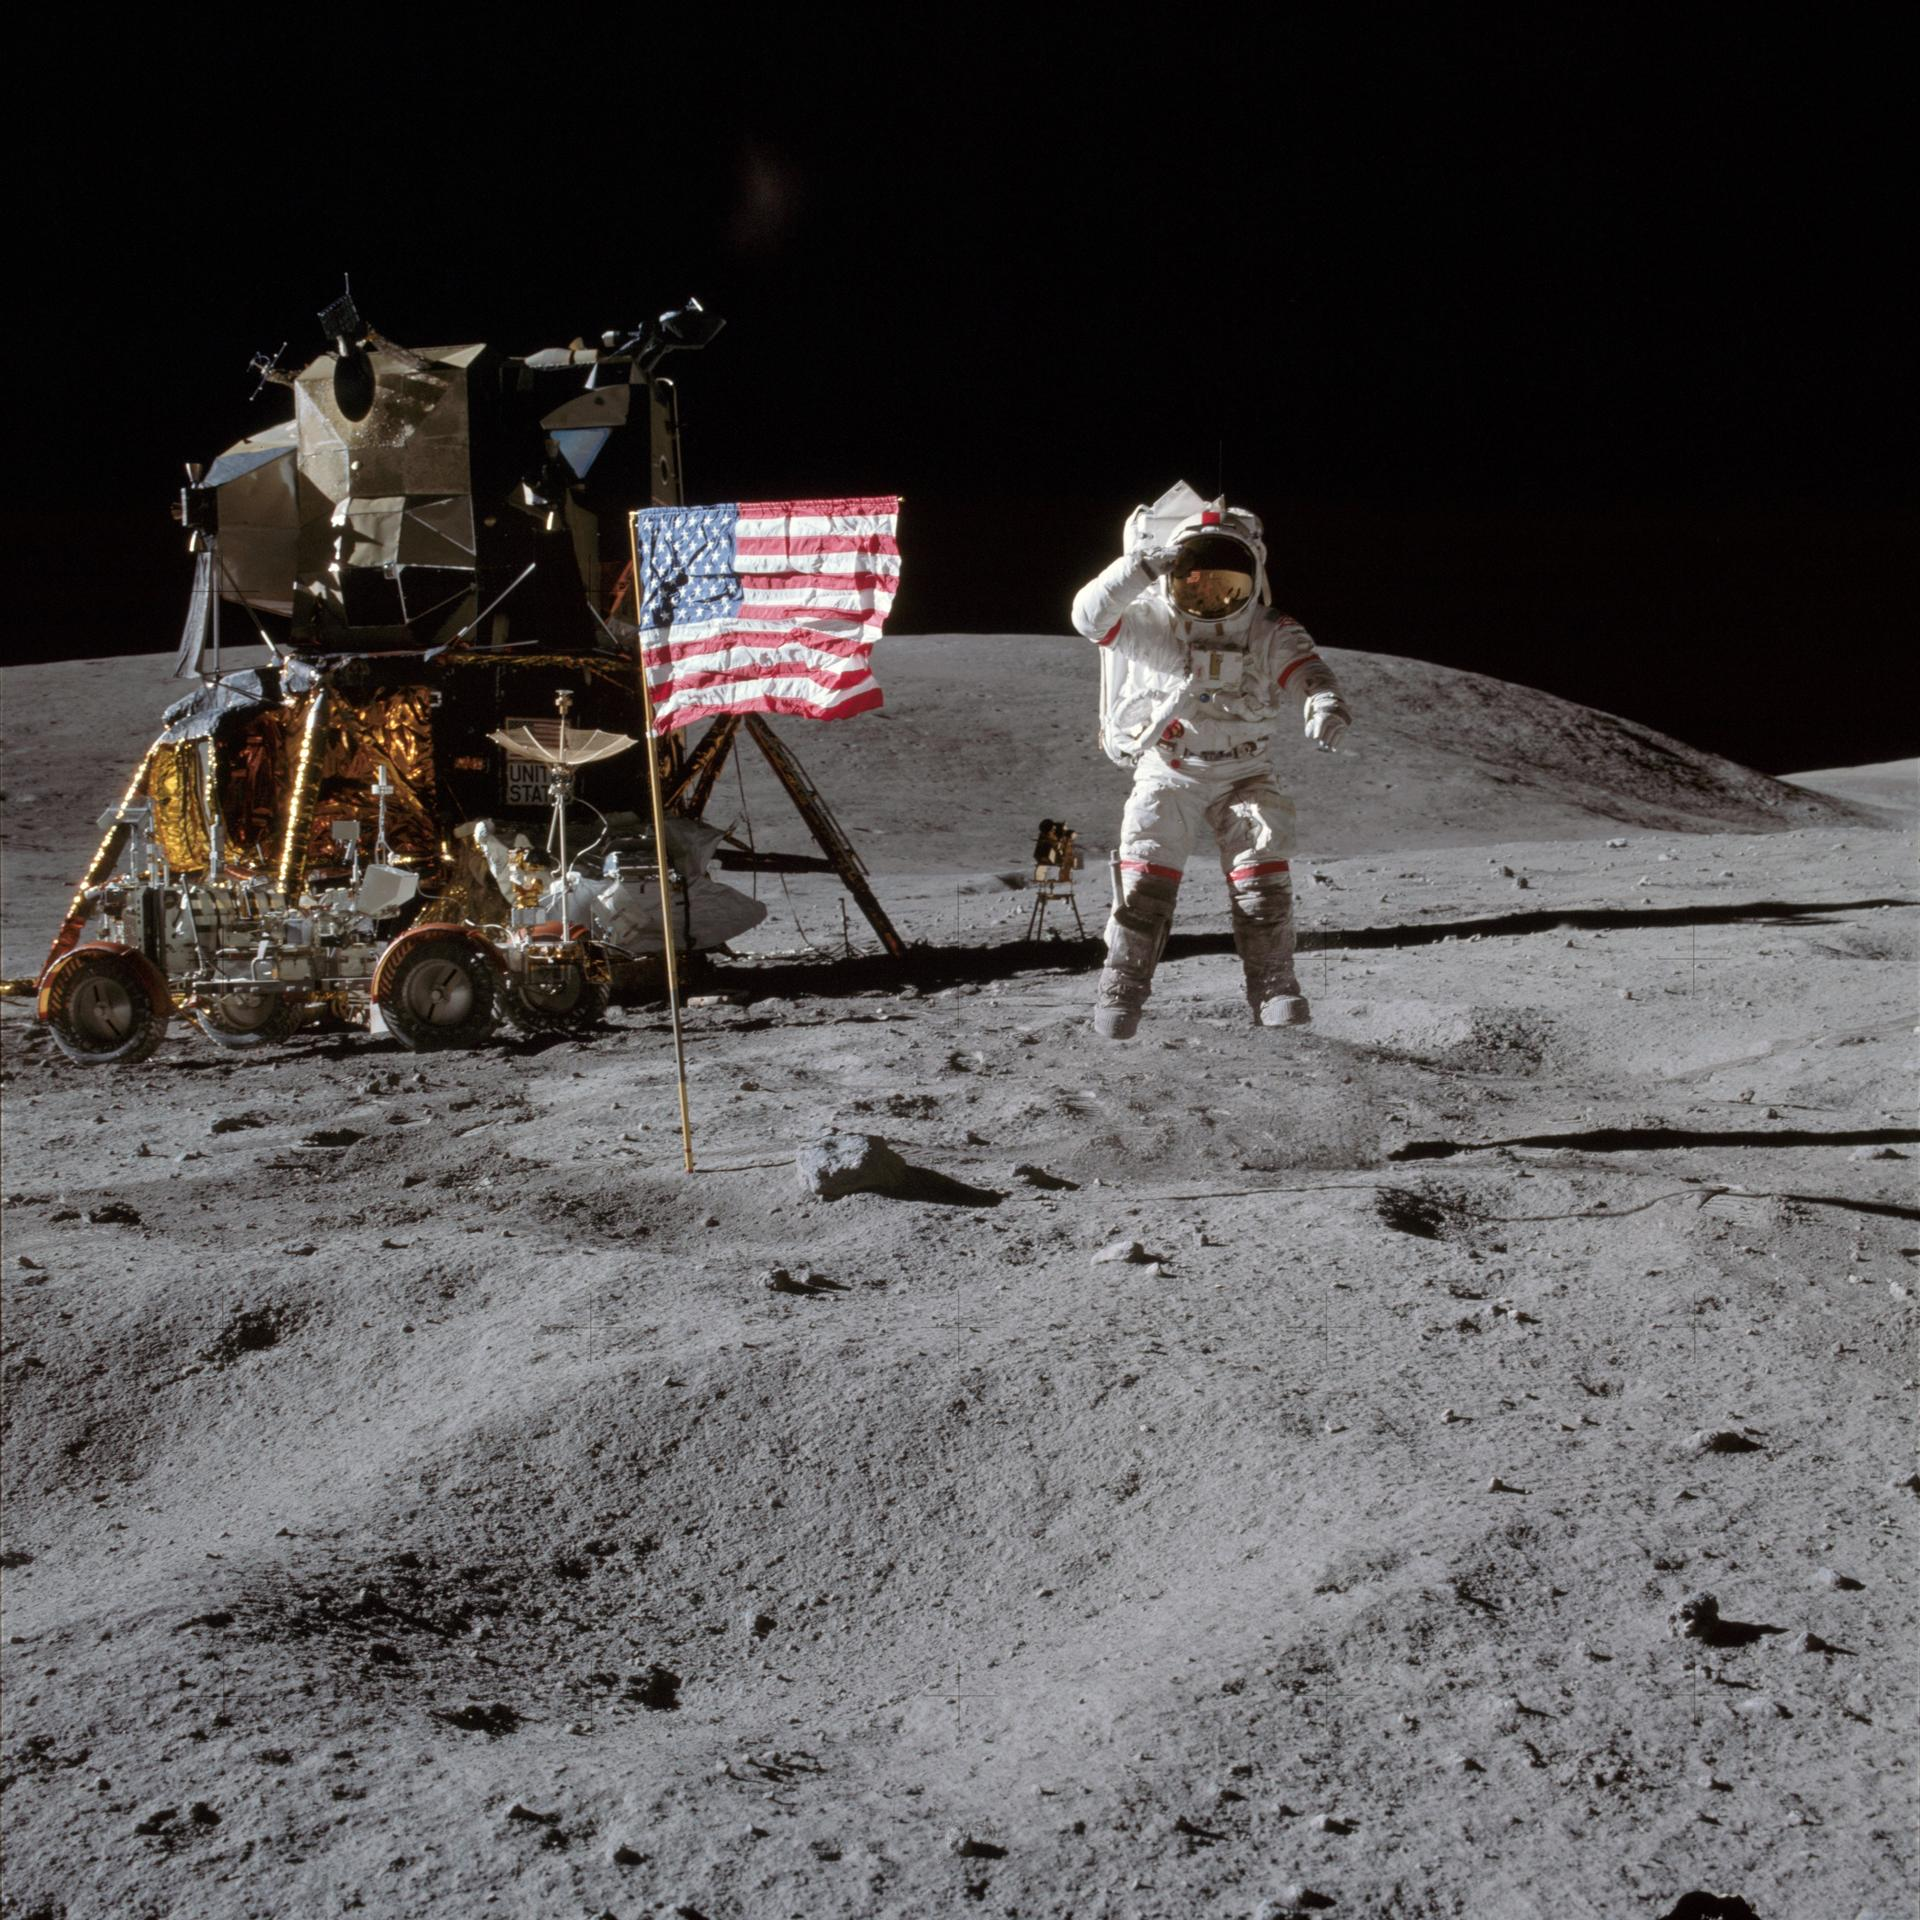 Jumping on the moon and saluting the American flag, Astronaut John Young became one of the few people who have walked on the lunar surface during the Apollo 16 mission in 1972. (Photo NASA)